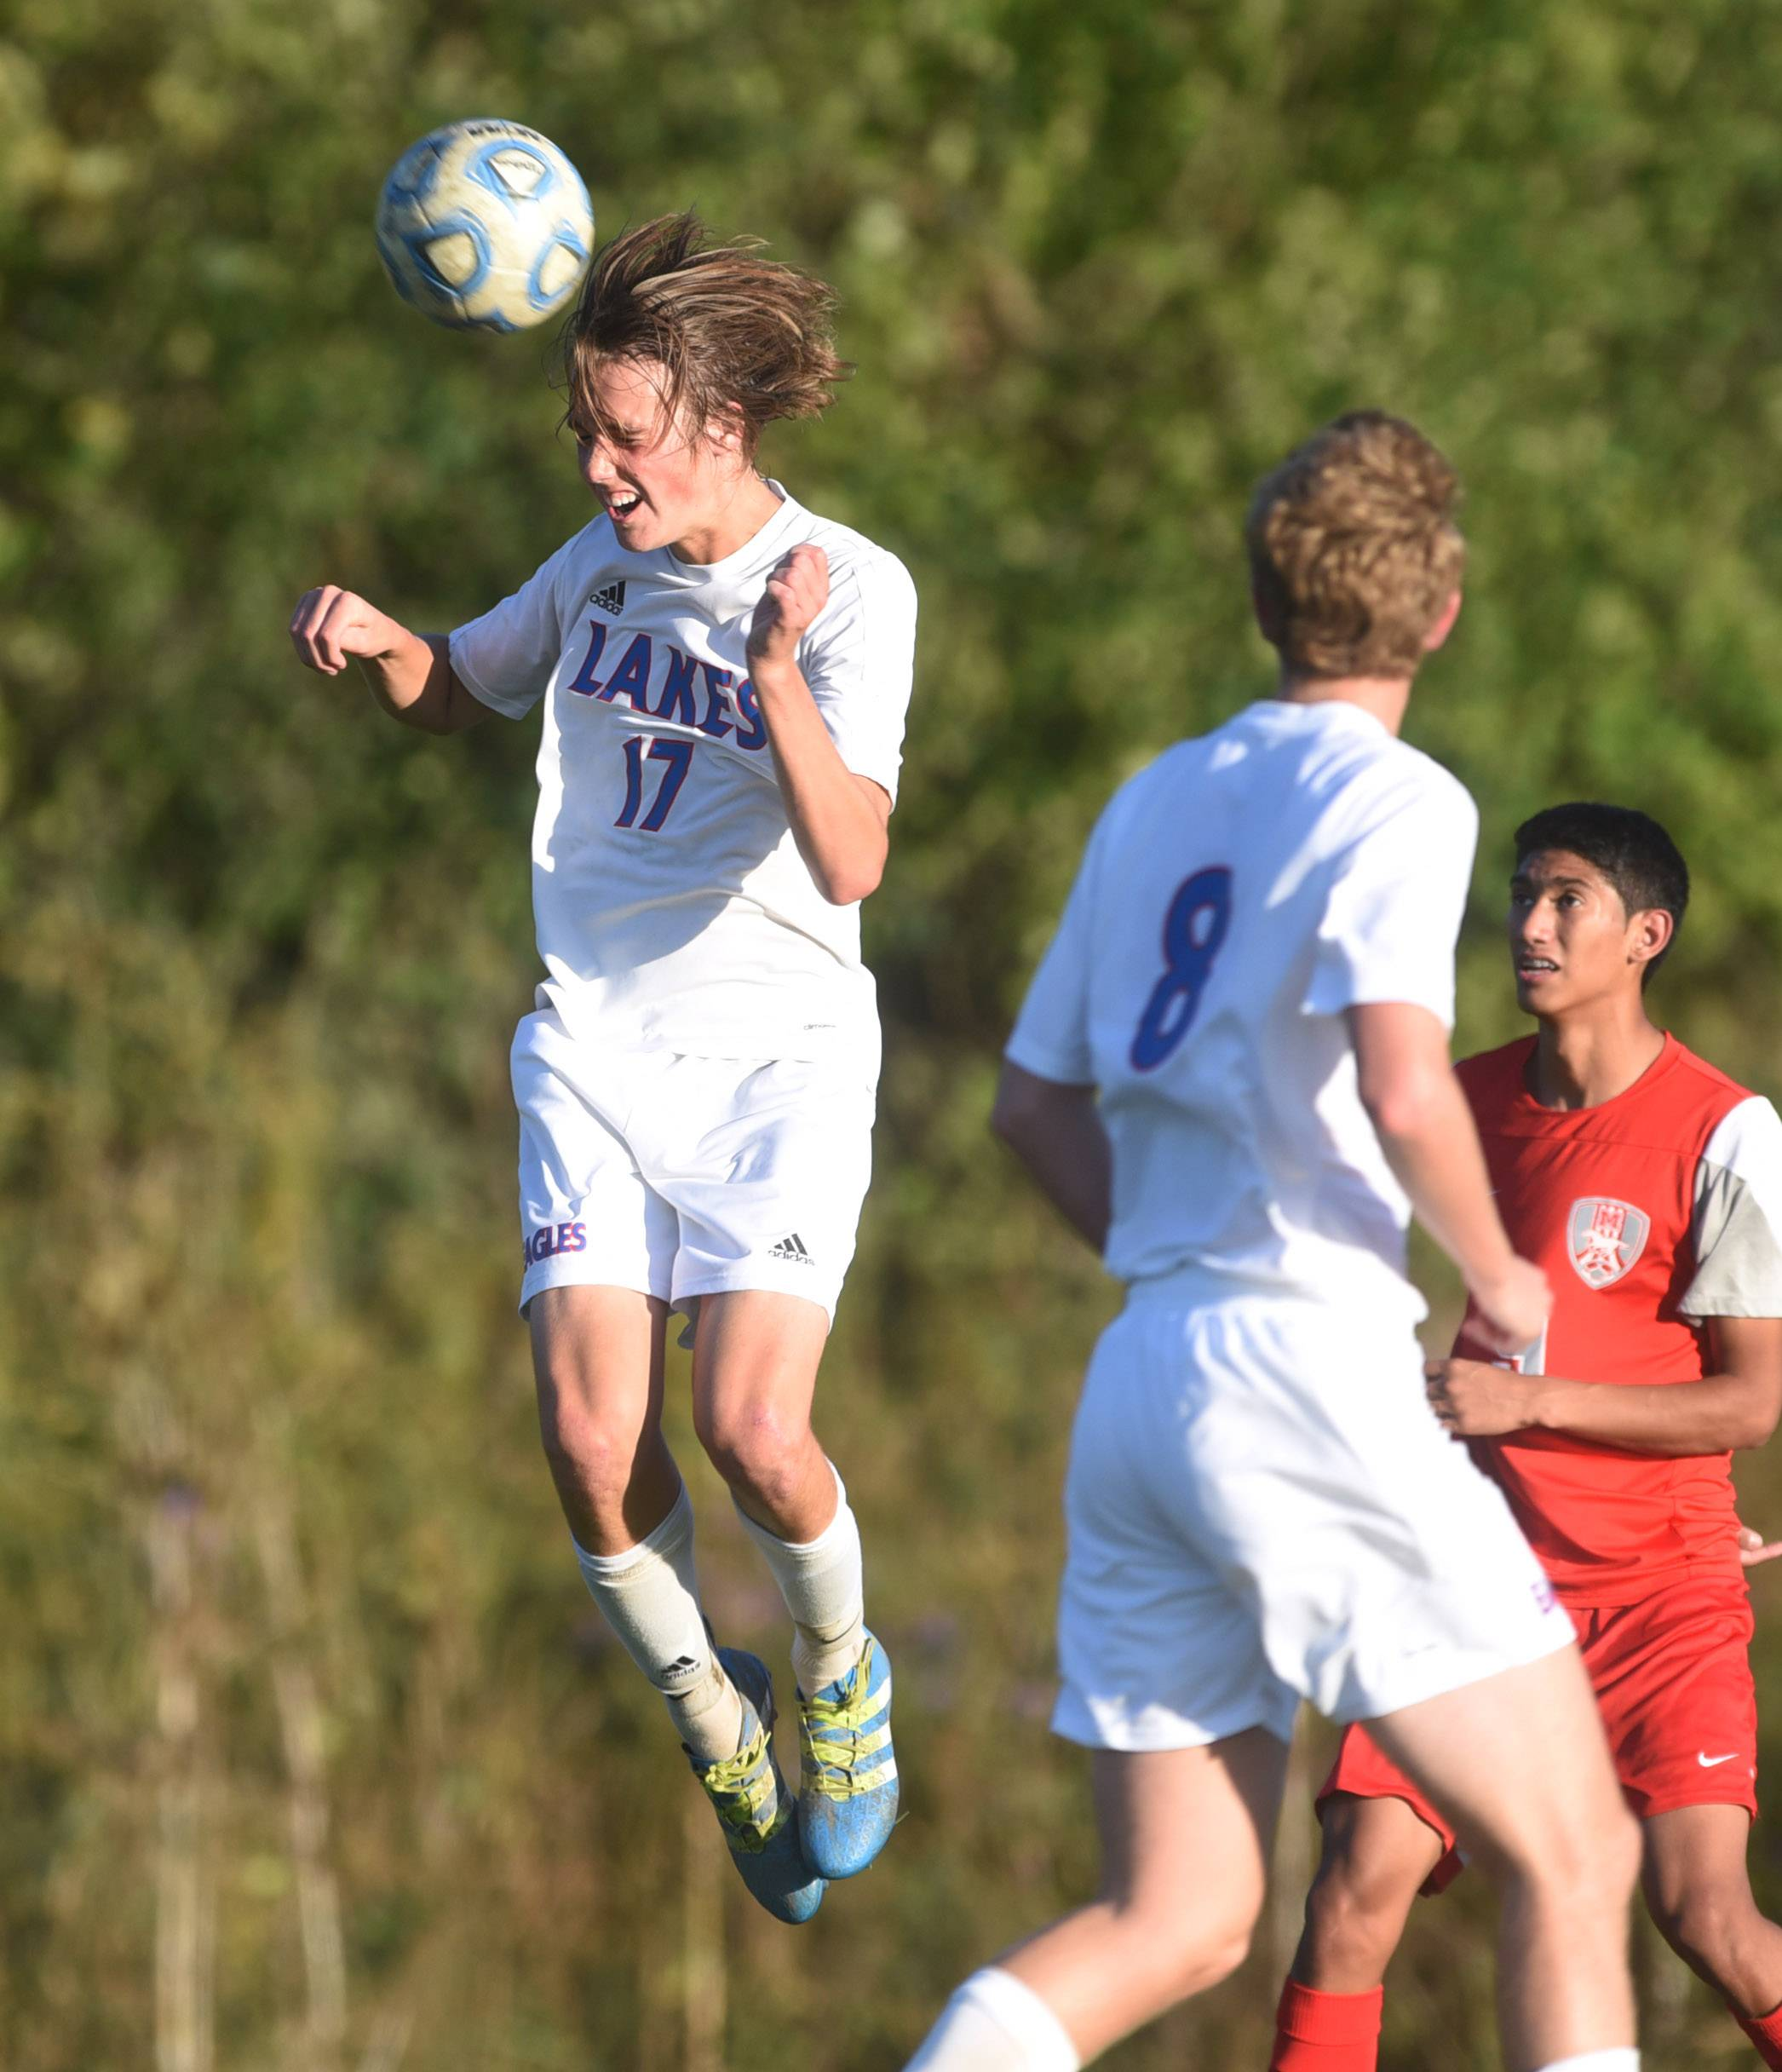 Lakes' Max Keenan (17) goes for a header during Tuesday's home soccer game against Mundelein in Lake Villa.